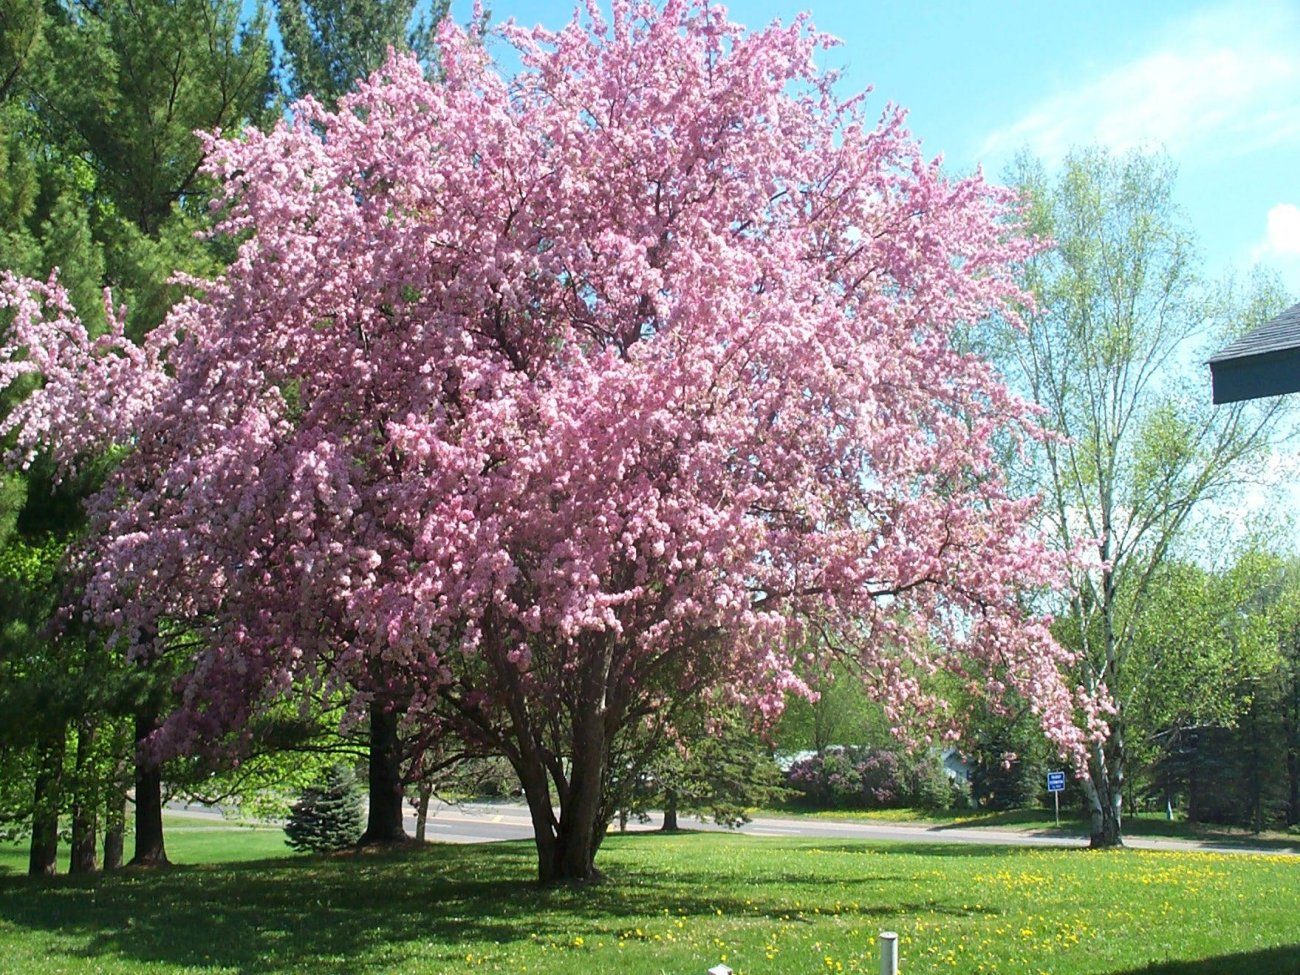 Flowering Tree Pictures - Beautiful Flowers